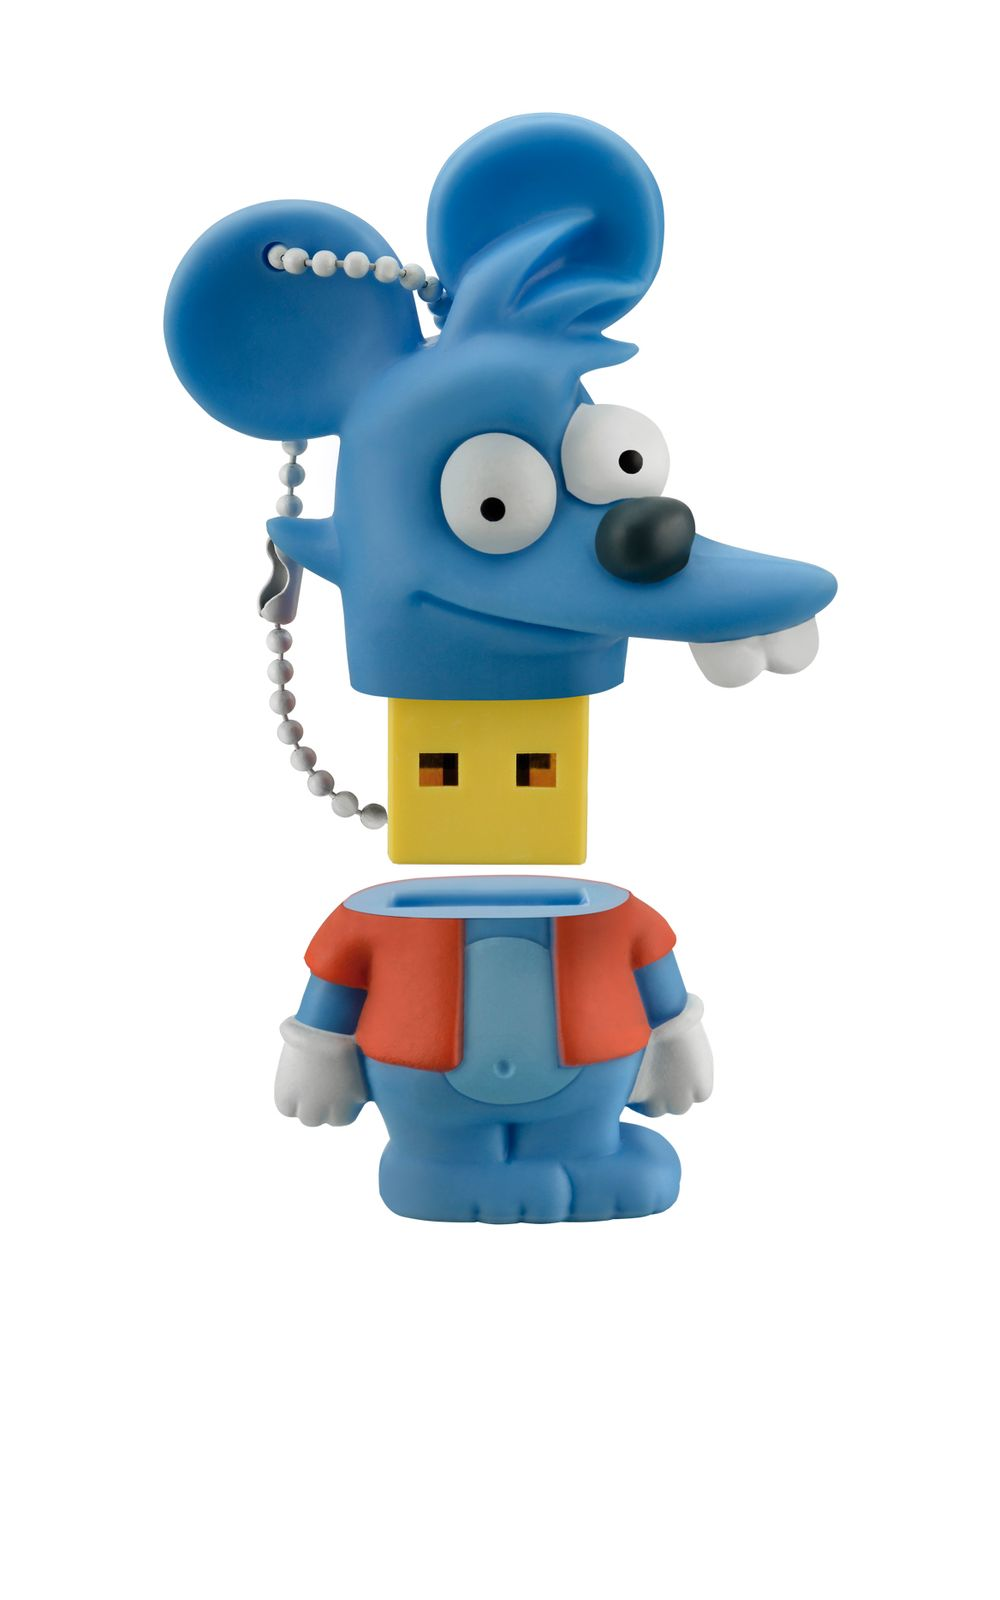 Foto 2 - Pendrive Comichão 8GB Multilaser Simpsons - PD076